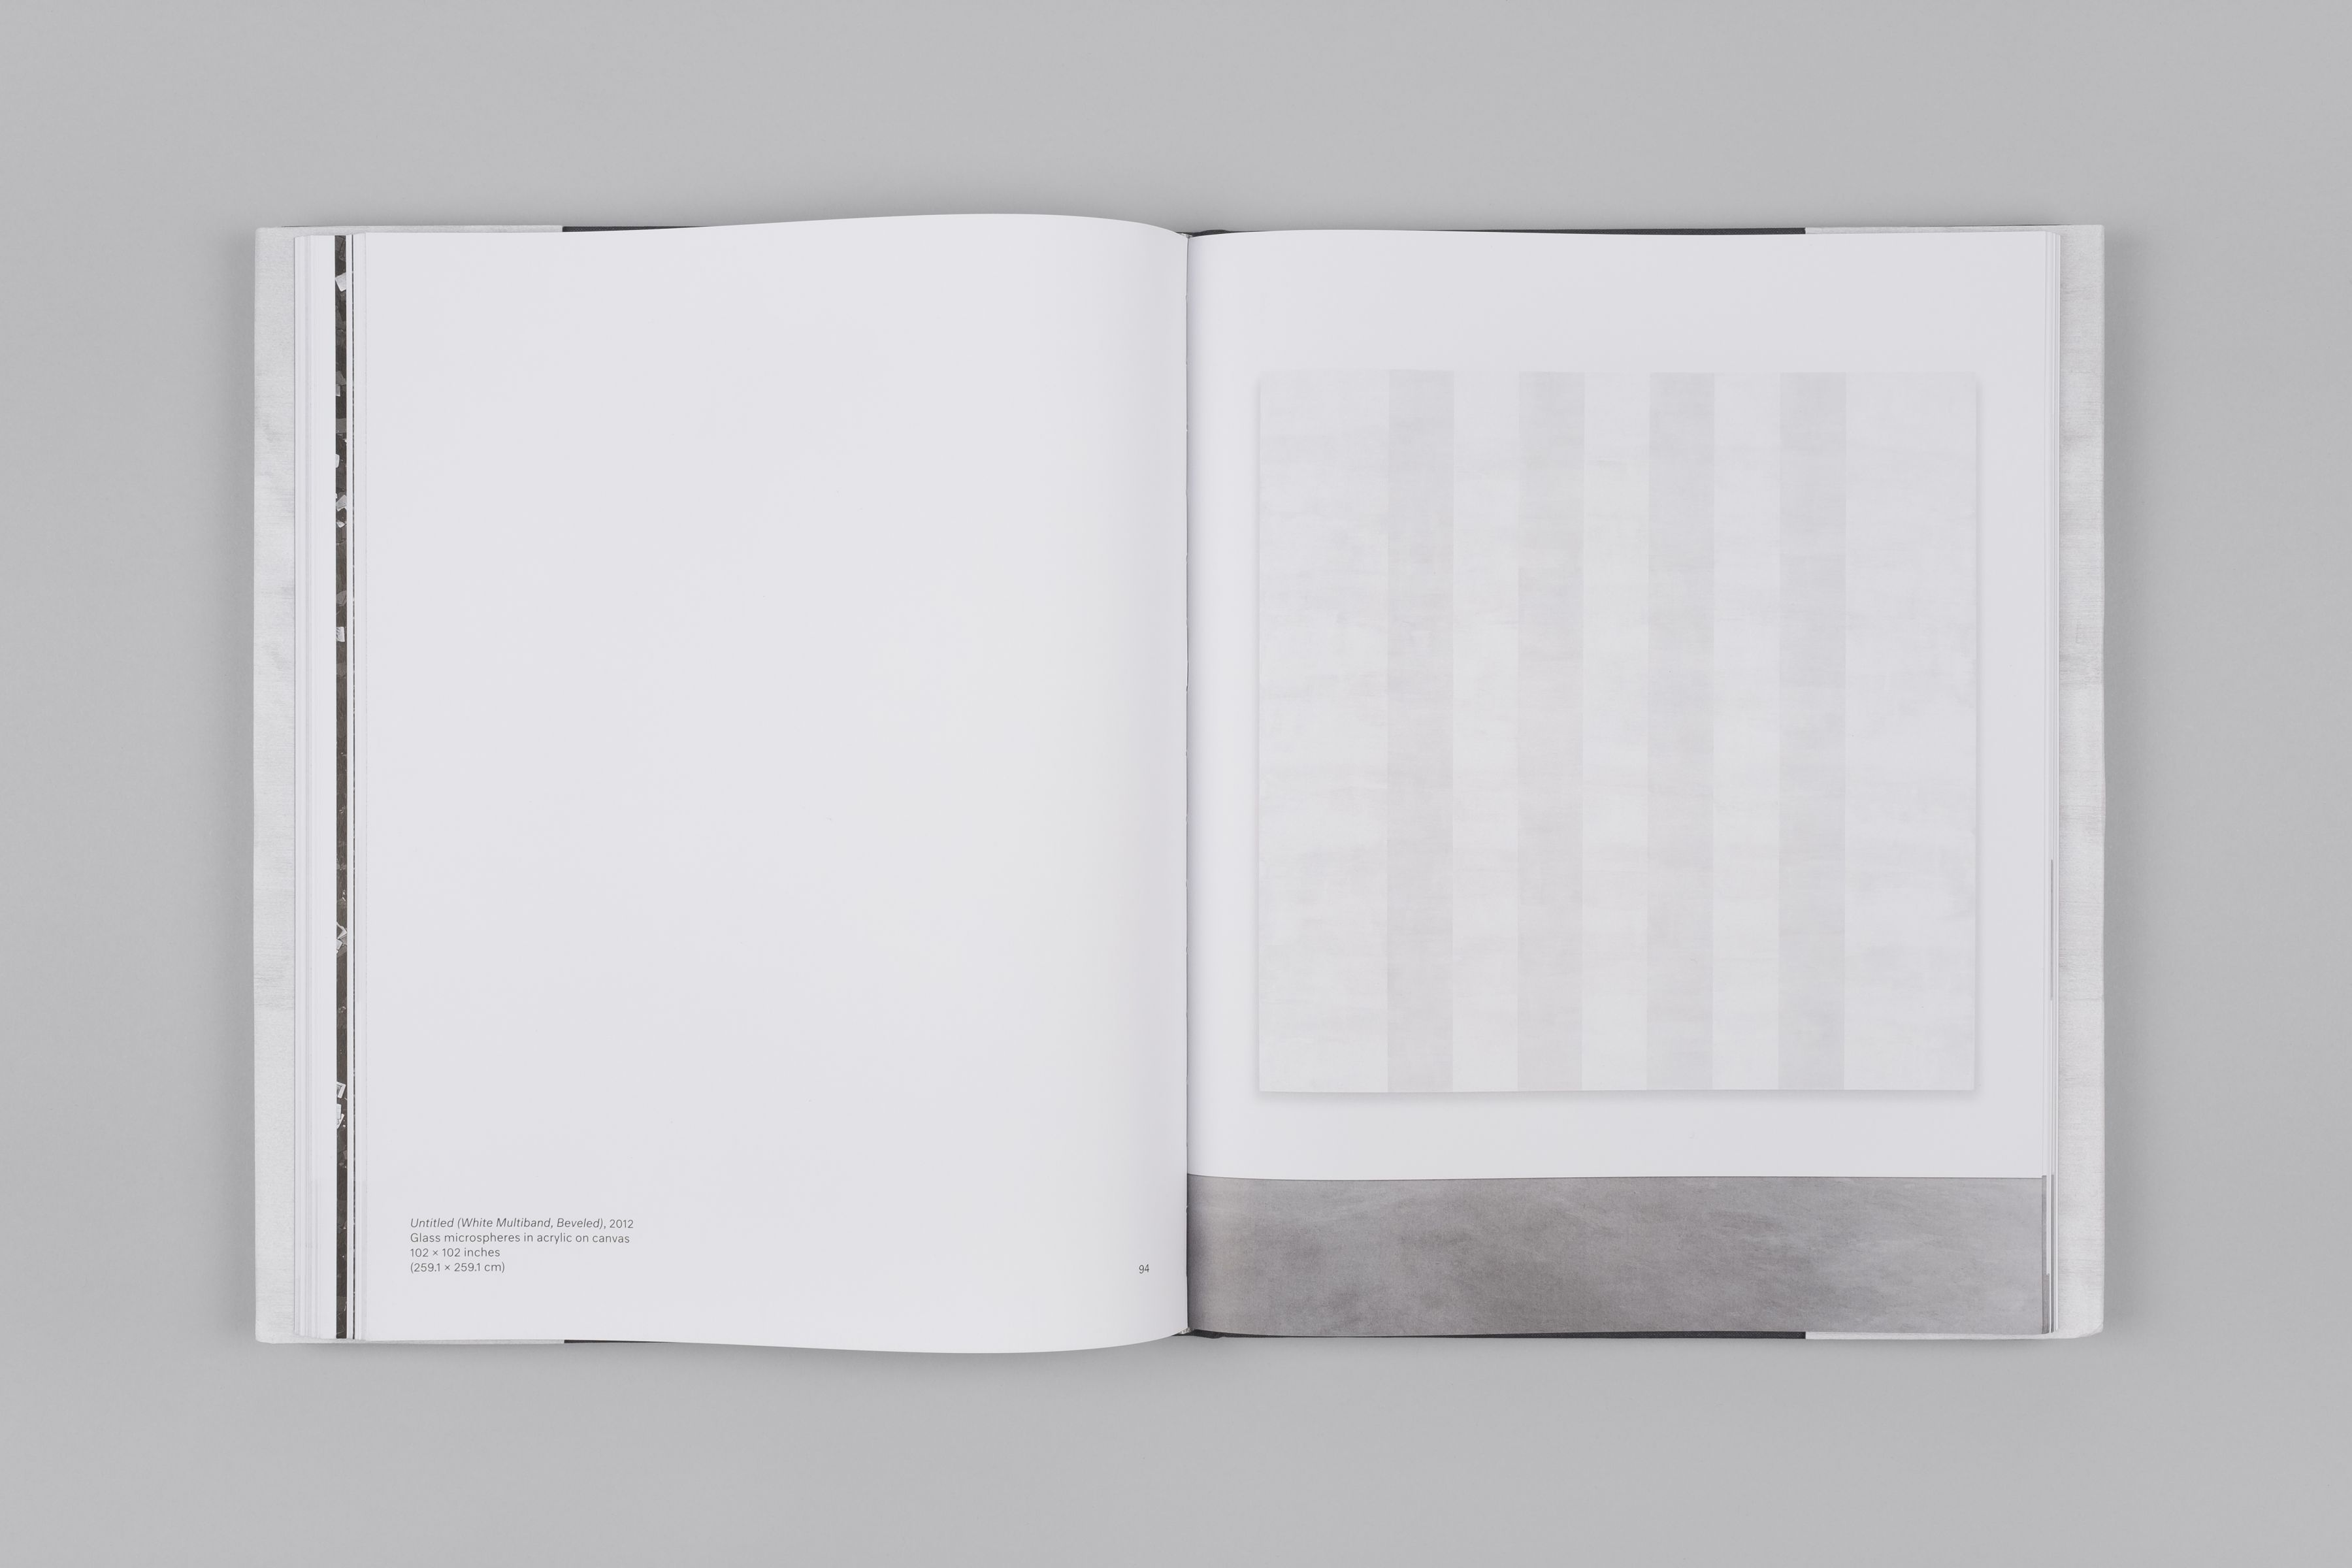 Mary Corse Catalogue published by Inventory Press / Kayne Griffin Corcoran with text by Suzanne Hudson and interview by Alex Bacon.